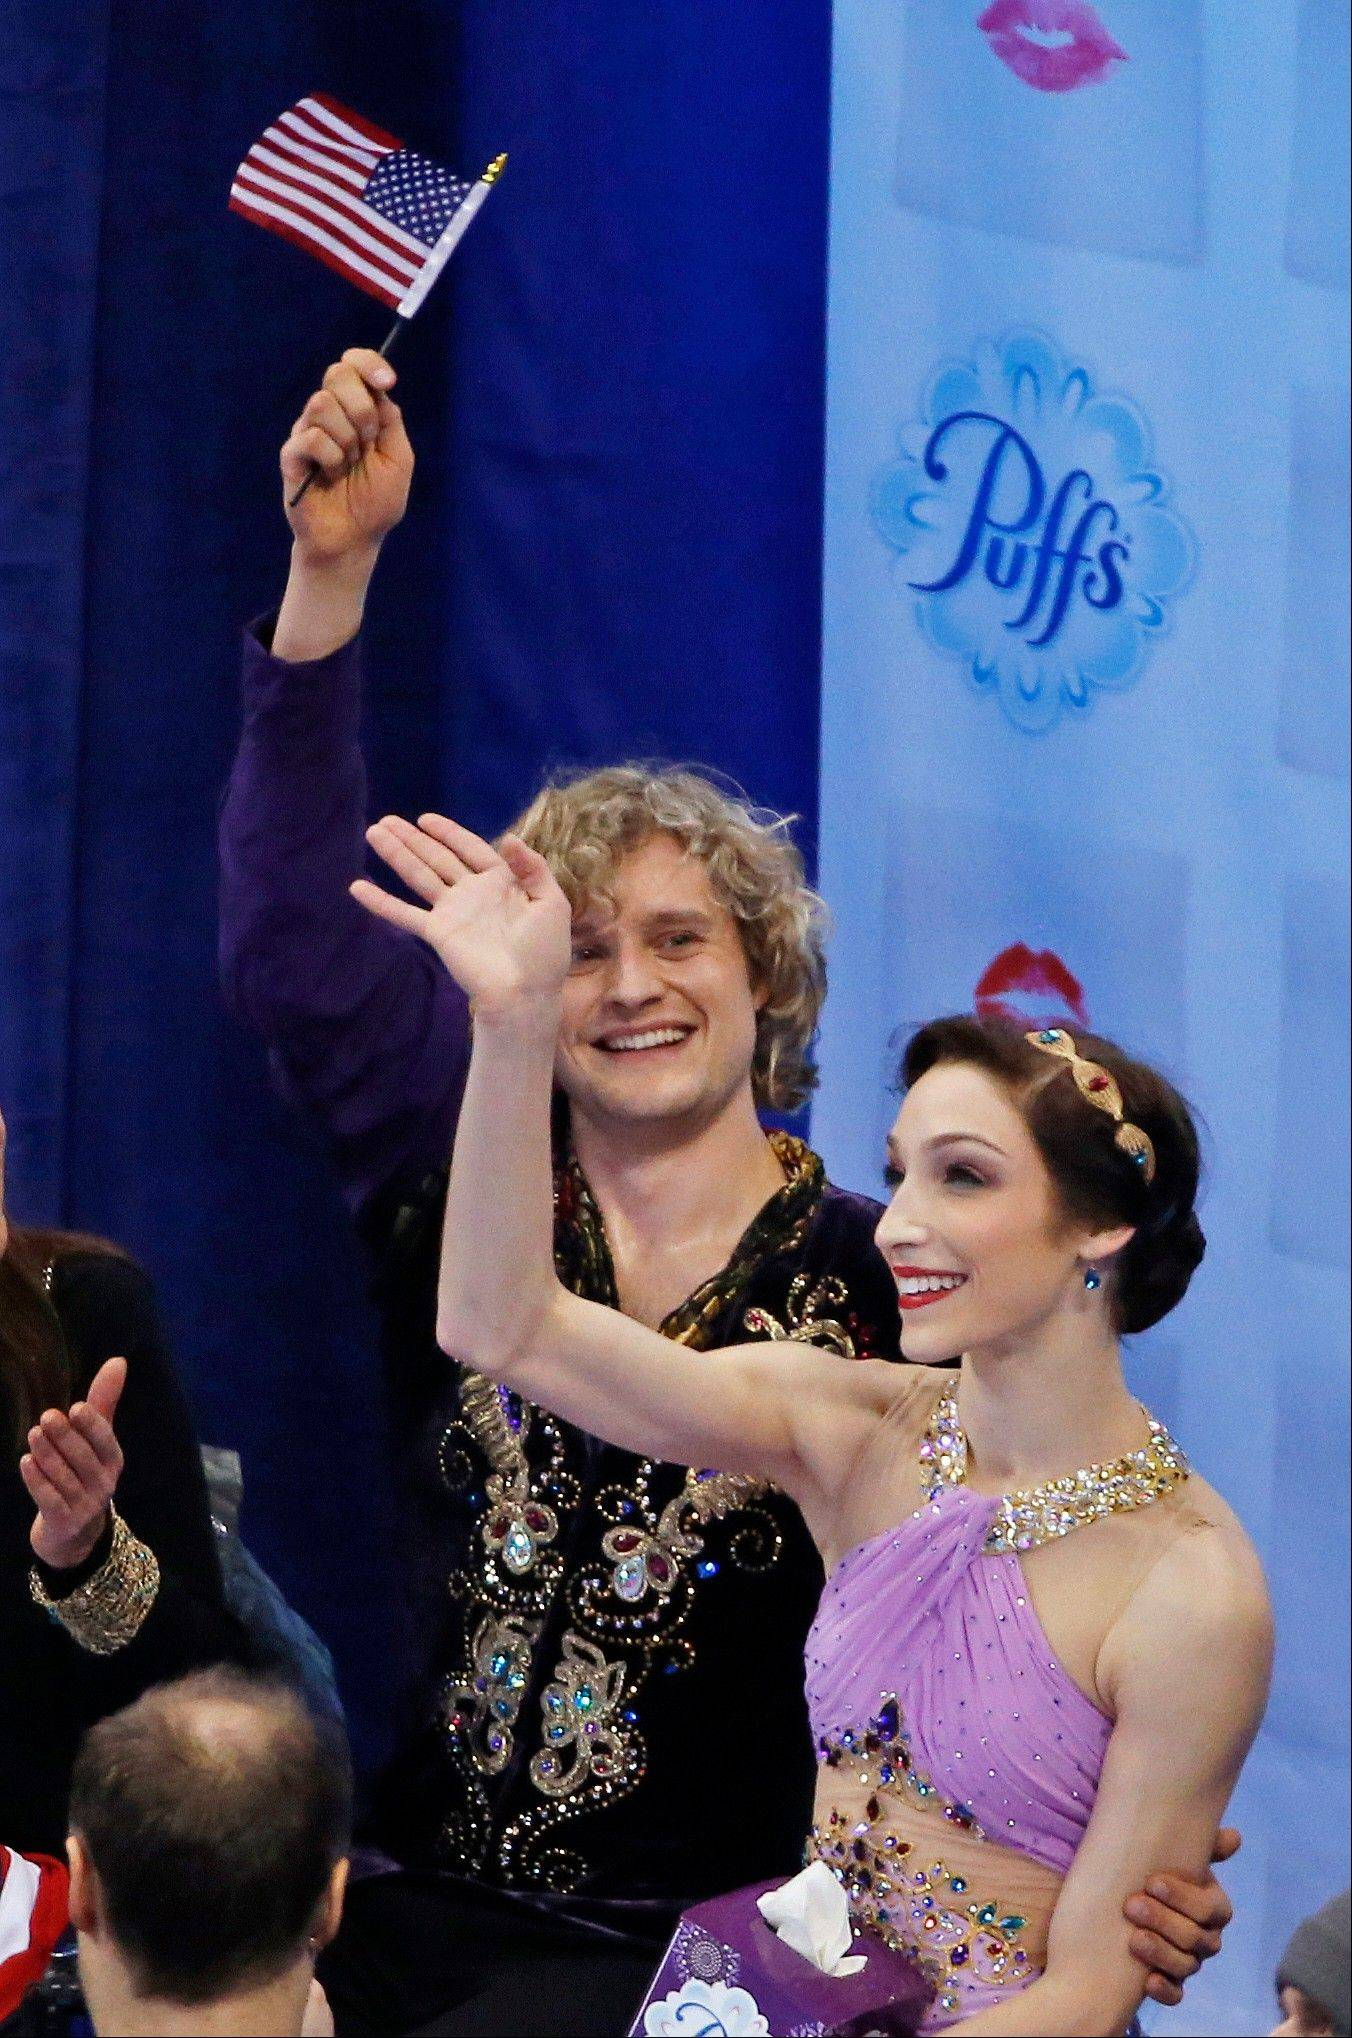 Meryl Davis and Charlie White wave as scores are posted after skating in the ice dance free skate at the U.S. Figure Skating Championships Saturday in Boston.